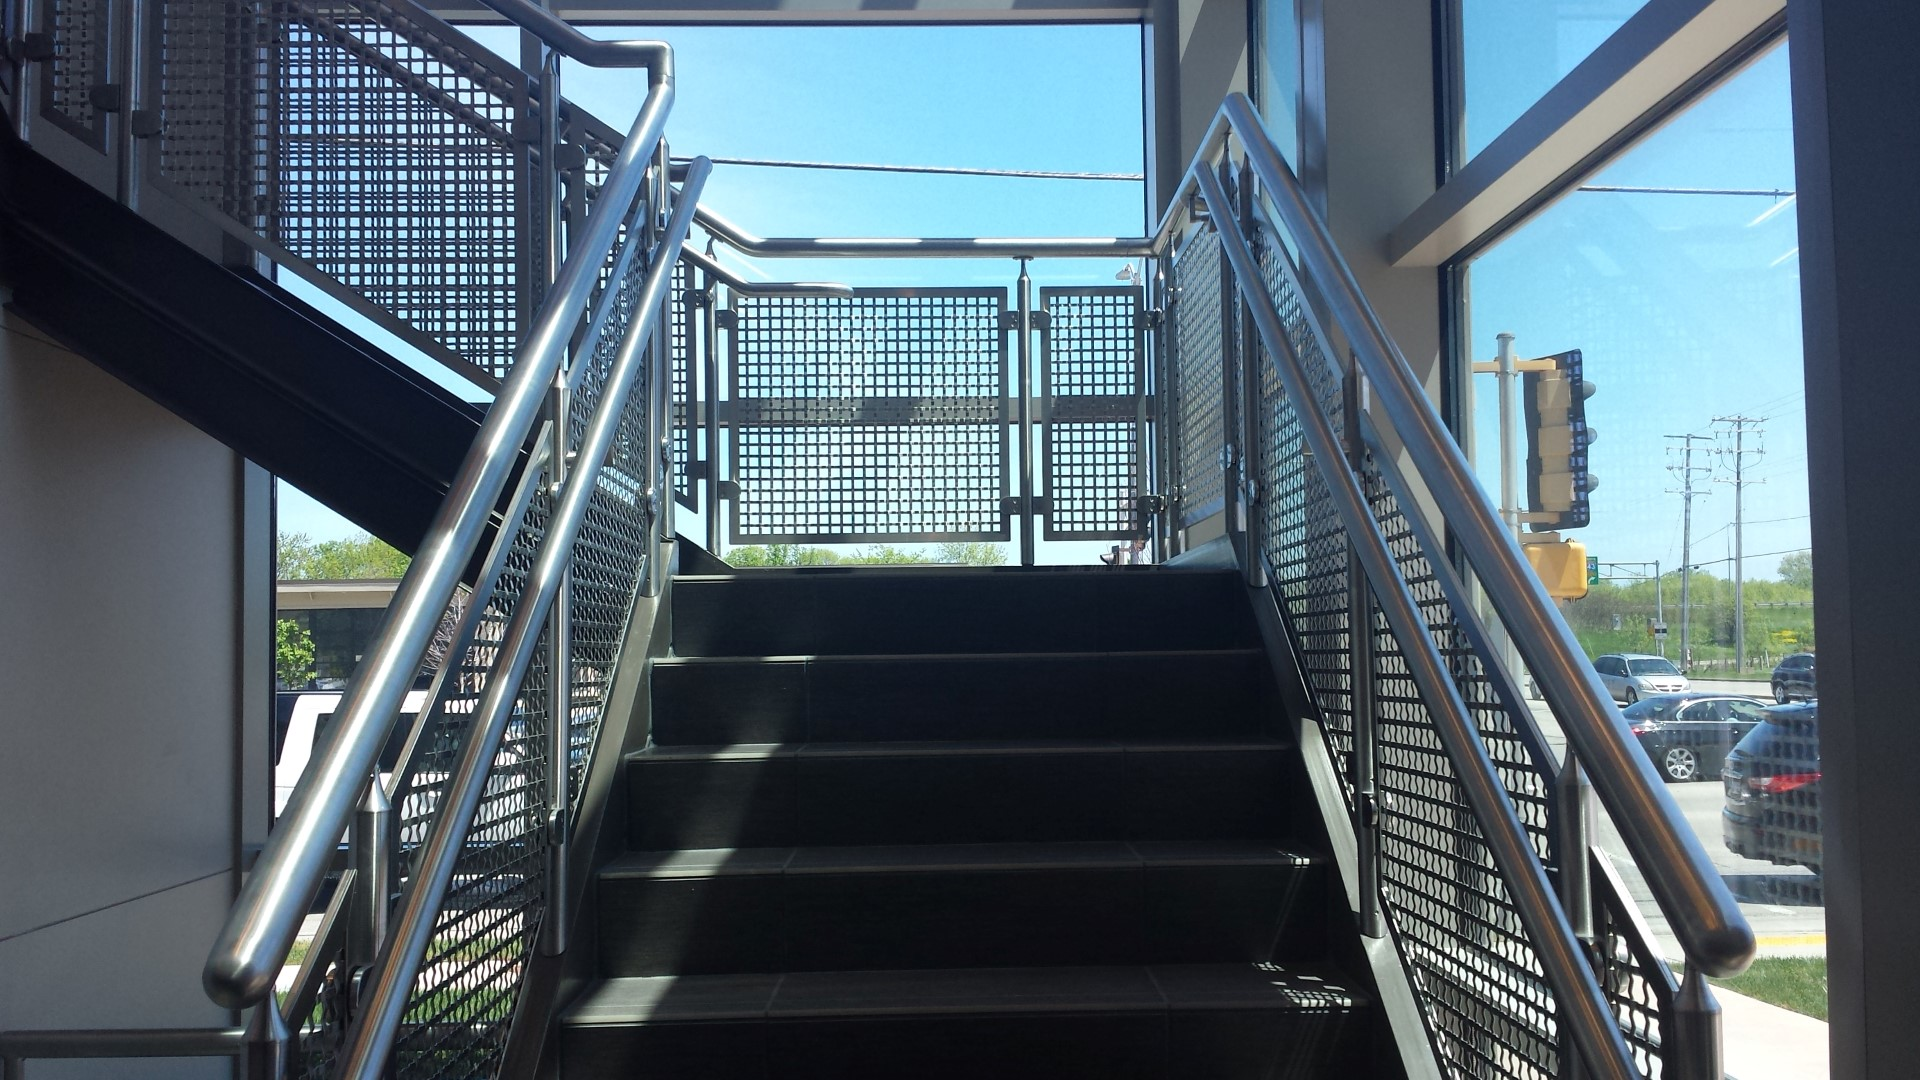 Banker Wire's S-15 flat woven wire mesh allows sunlight to filter throughout this space.